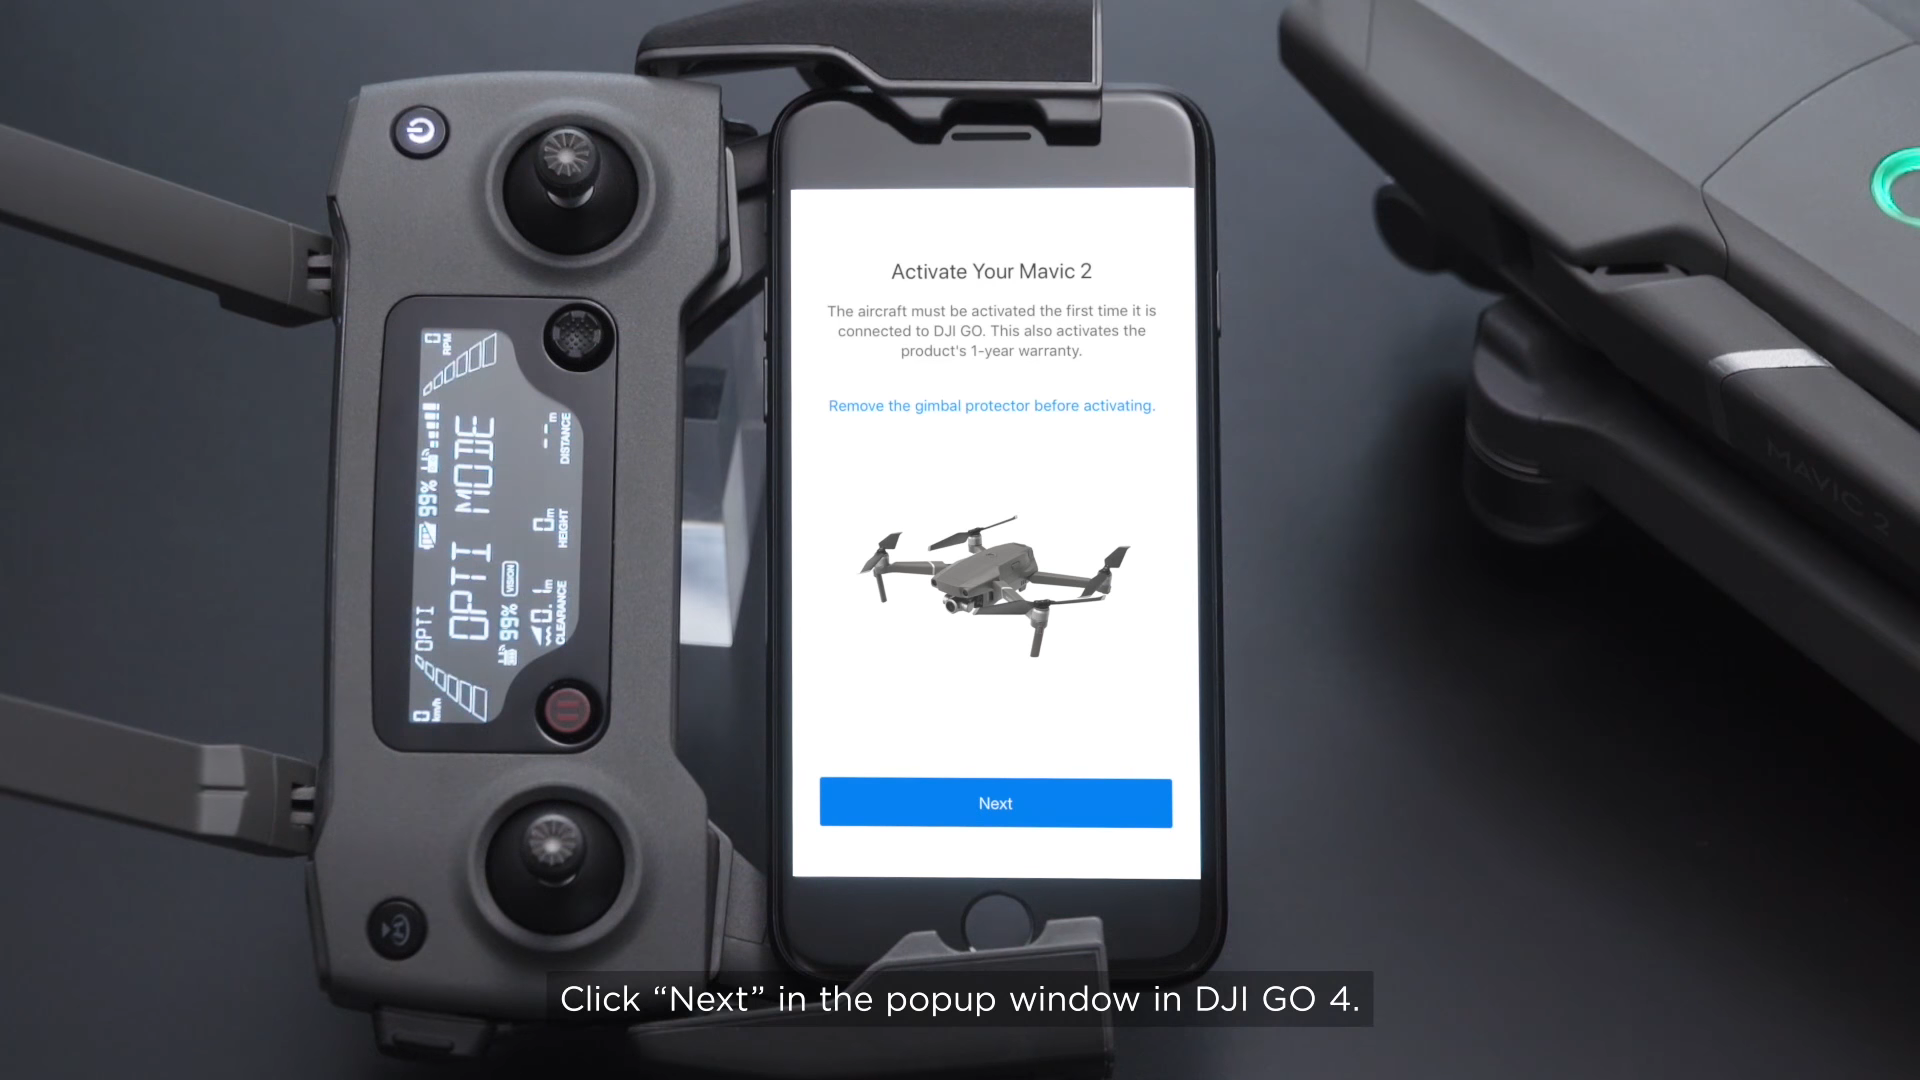 Open the DJI Go 4 App to Activate Mavic 2